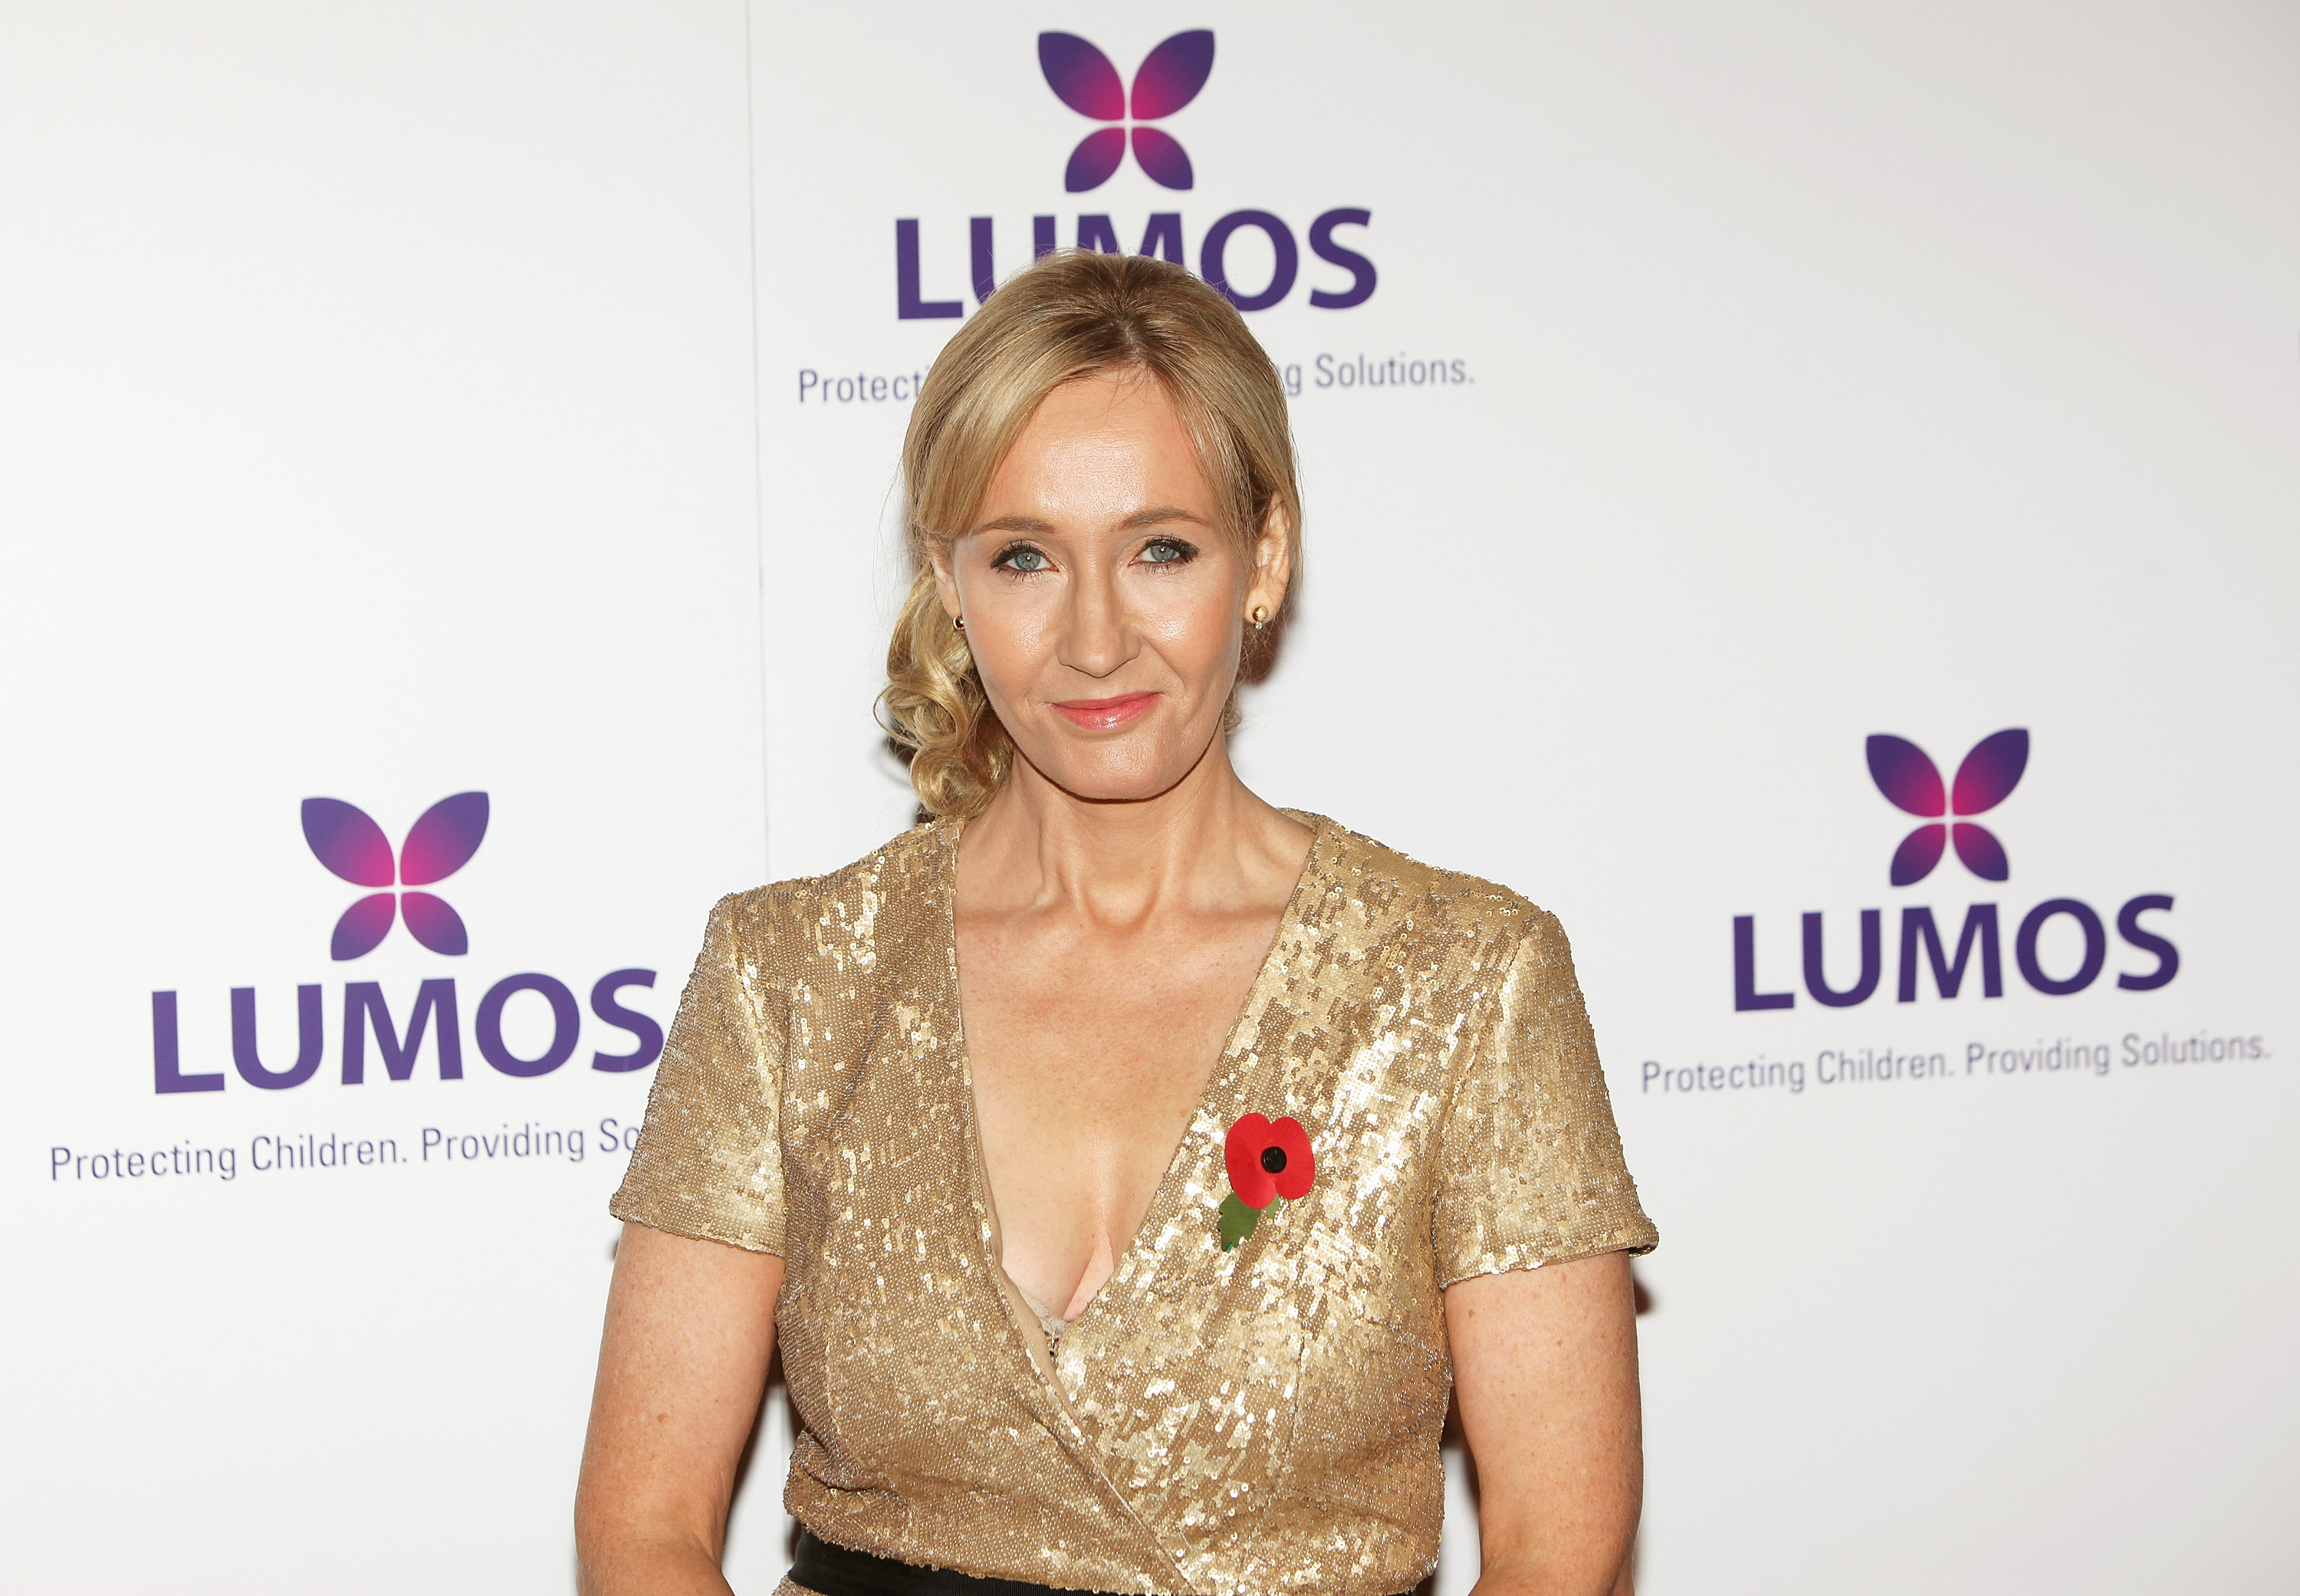 J.K. Rowling attends a fundraising event for her nonprofit organization, Lumos, in 2013.